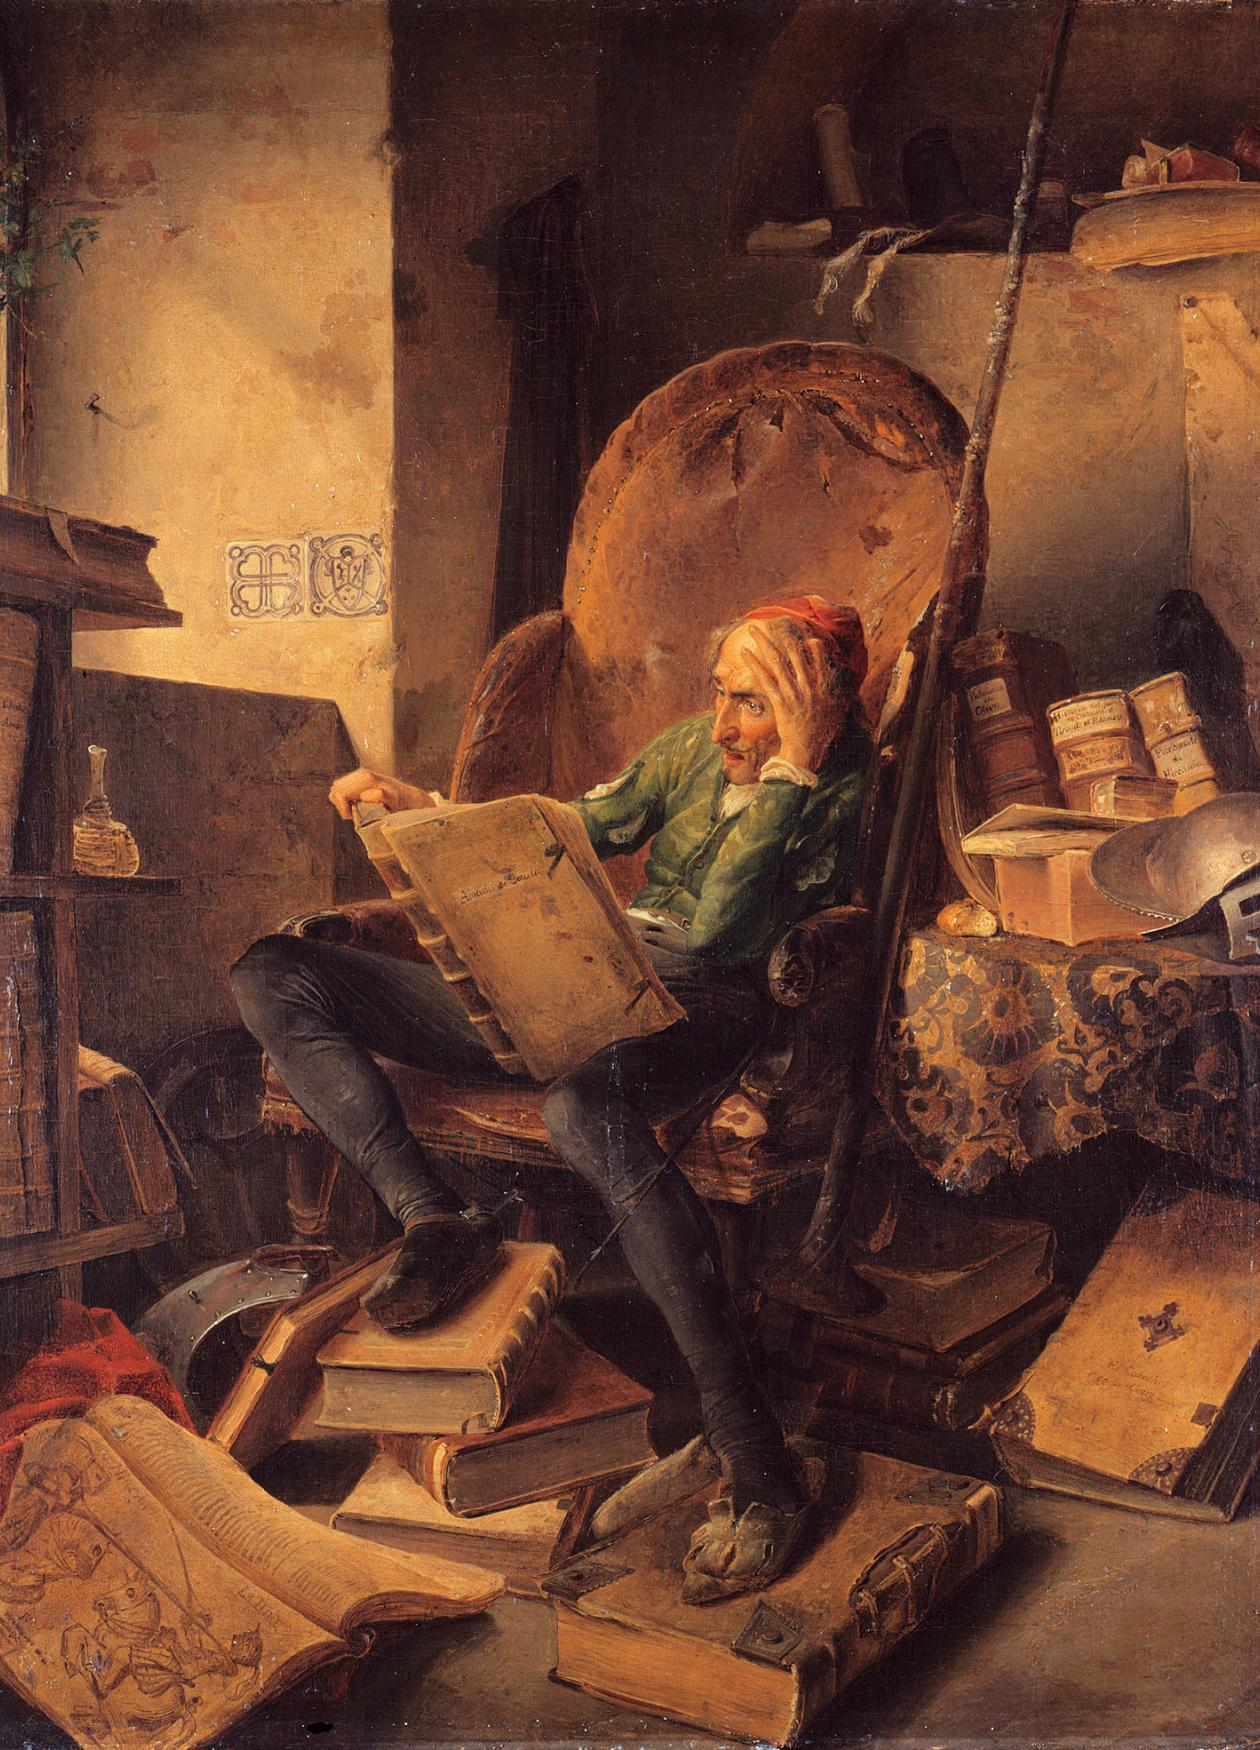 painting of a haggard man sitting in a chair reading a large book, surrounding by more books